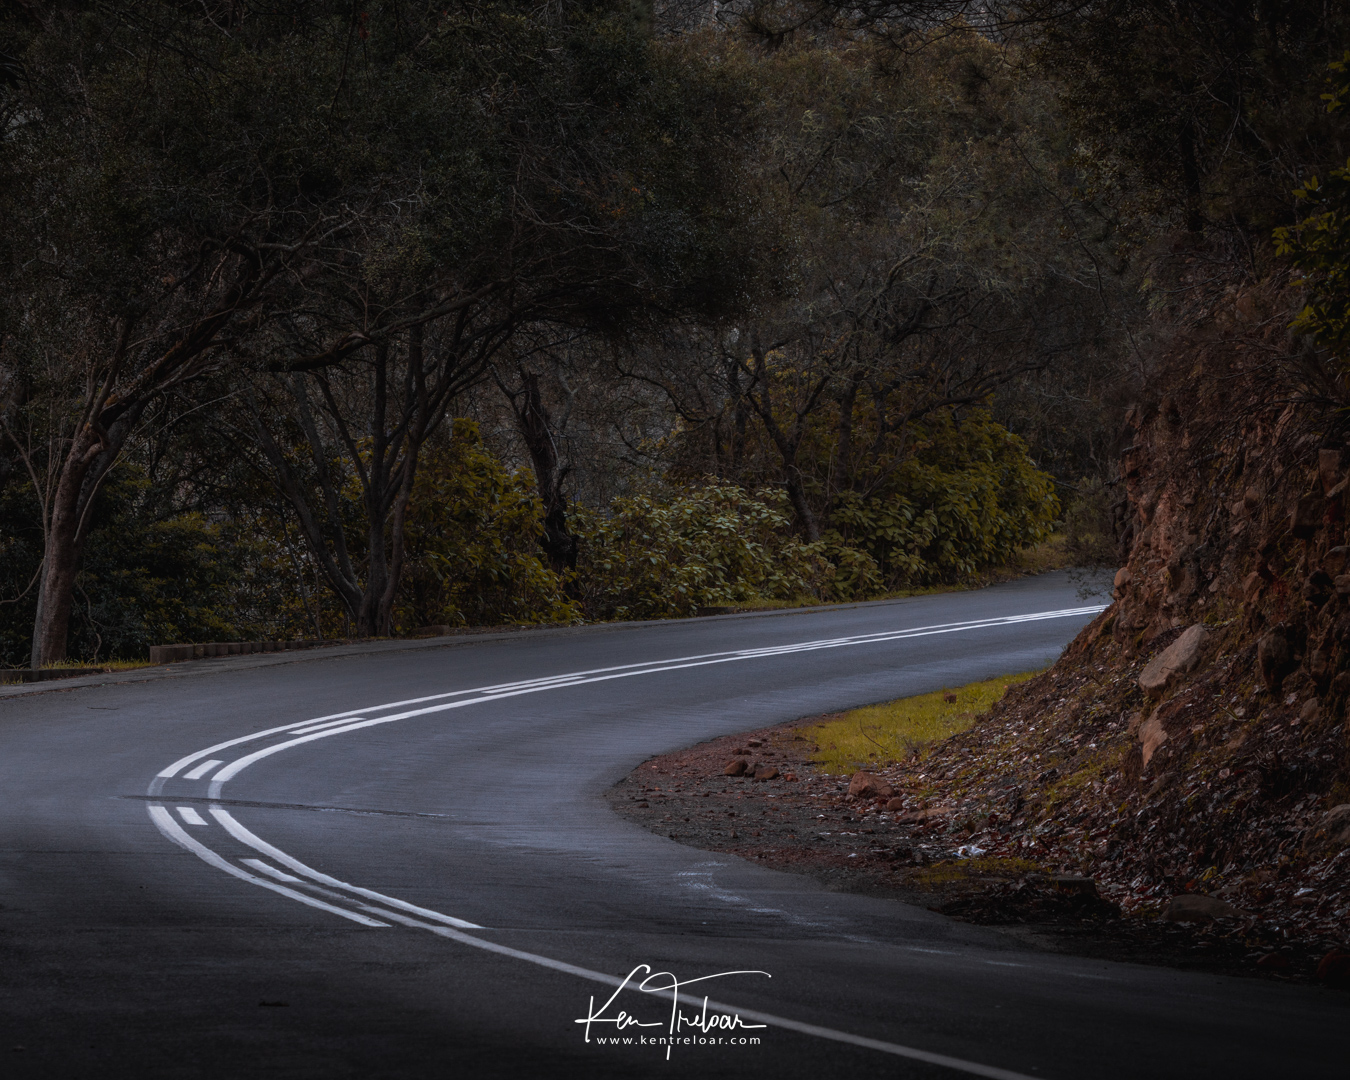 Image by Ken Treloar Photography - 2018 - All Rights Reserved (LR)-2.jpg